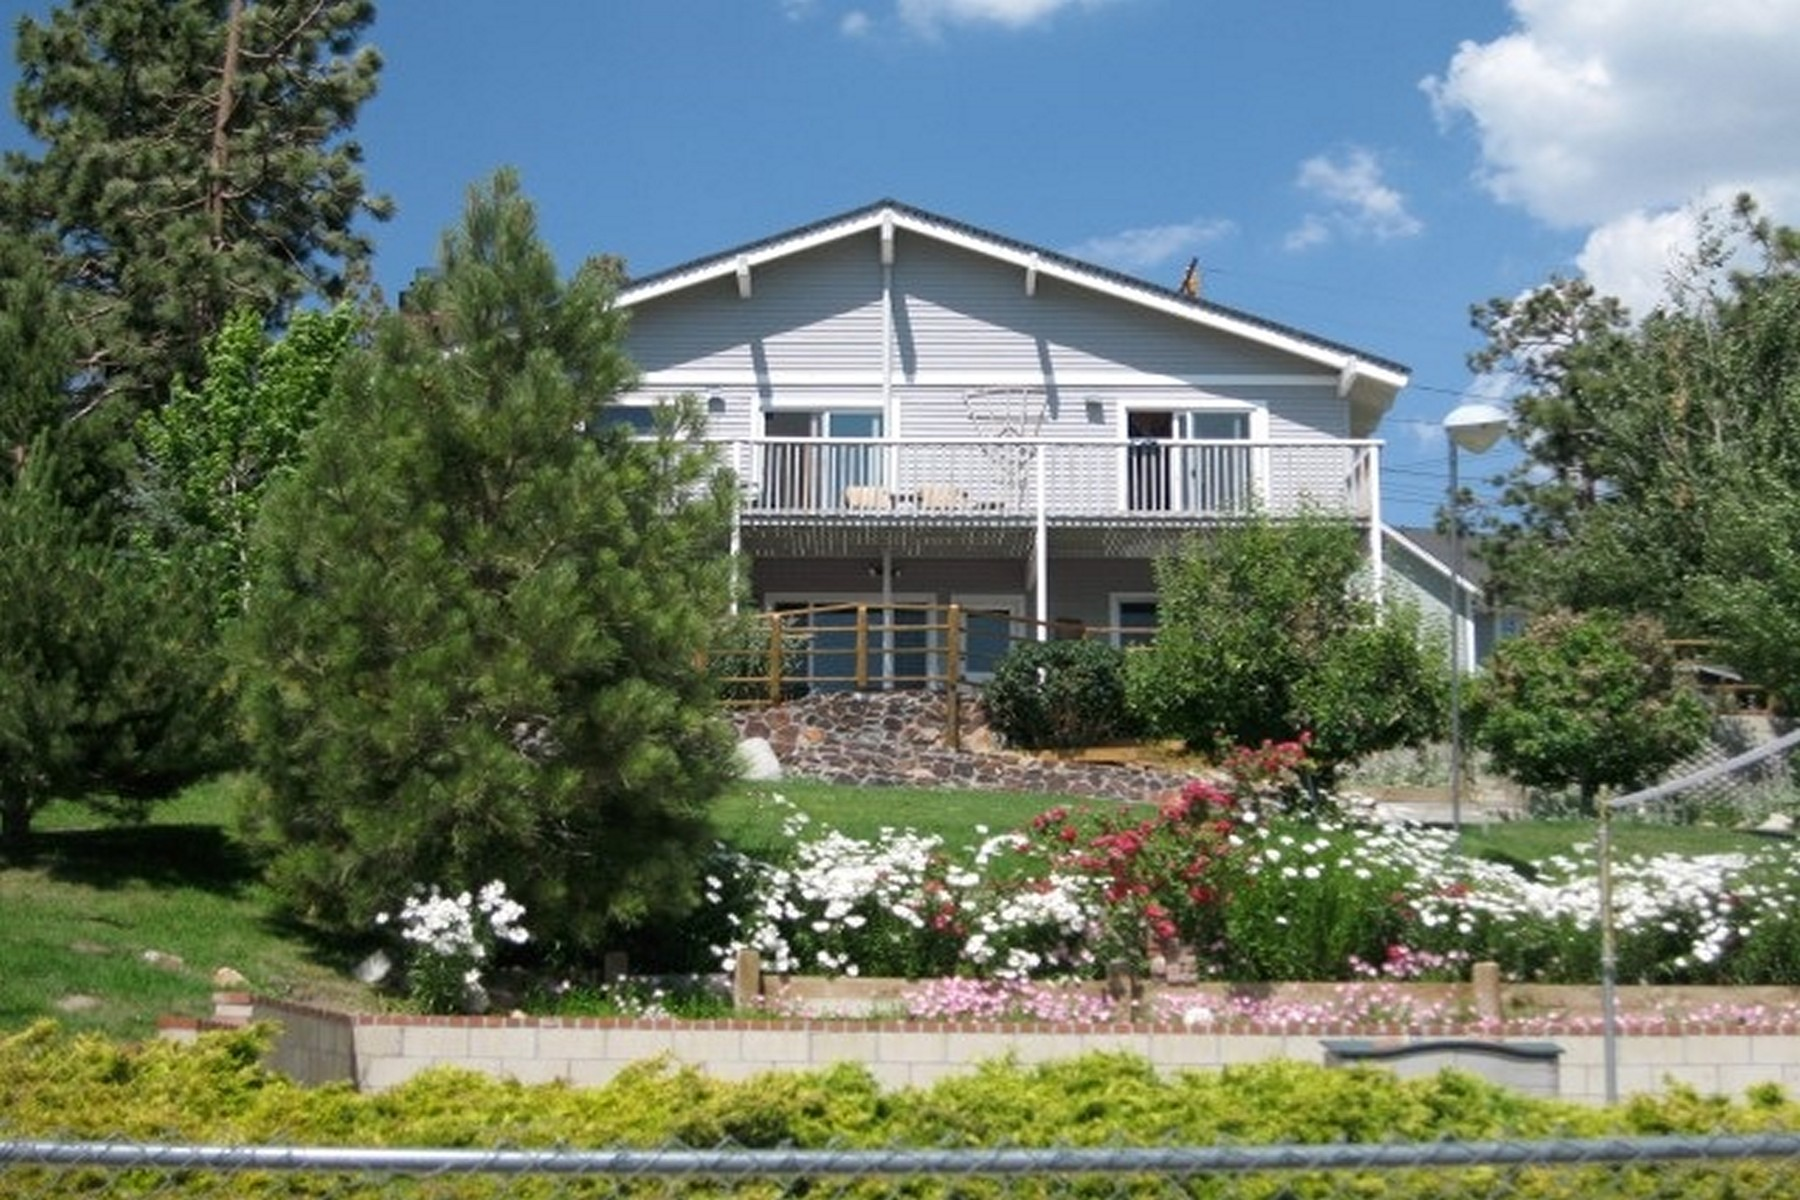 Maison unifamiliale pour l Vente à 39599 Lake Drive Big Bear Lake, Californie, 92315 États-Unis